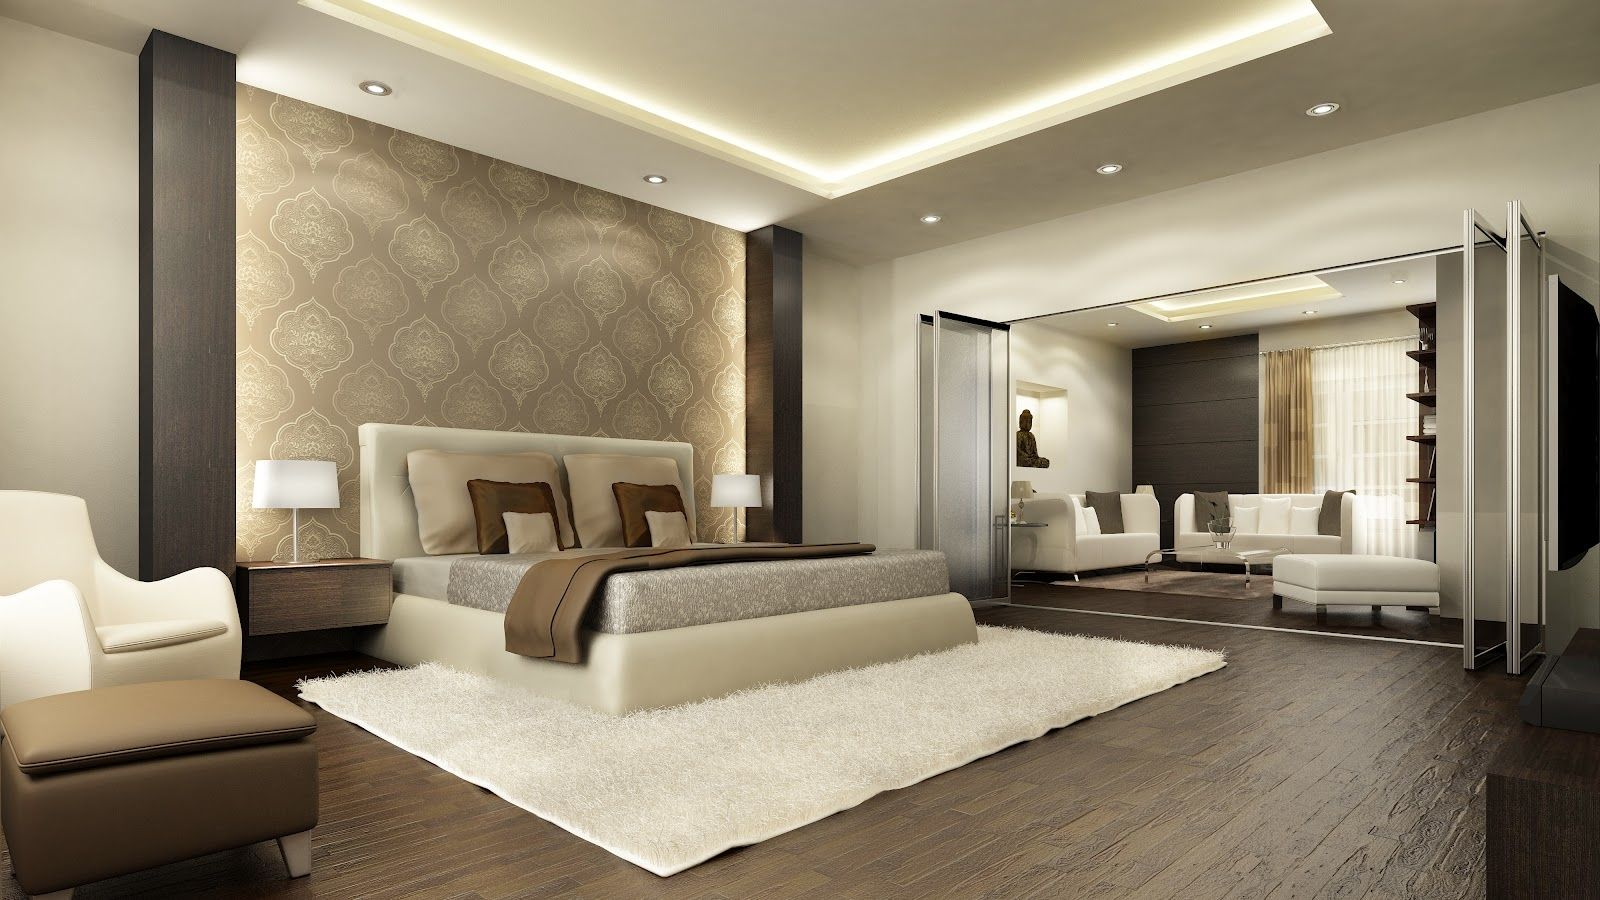 Bedroom Interior : Sophisticated Penthouse Master Bedroom Interior ...